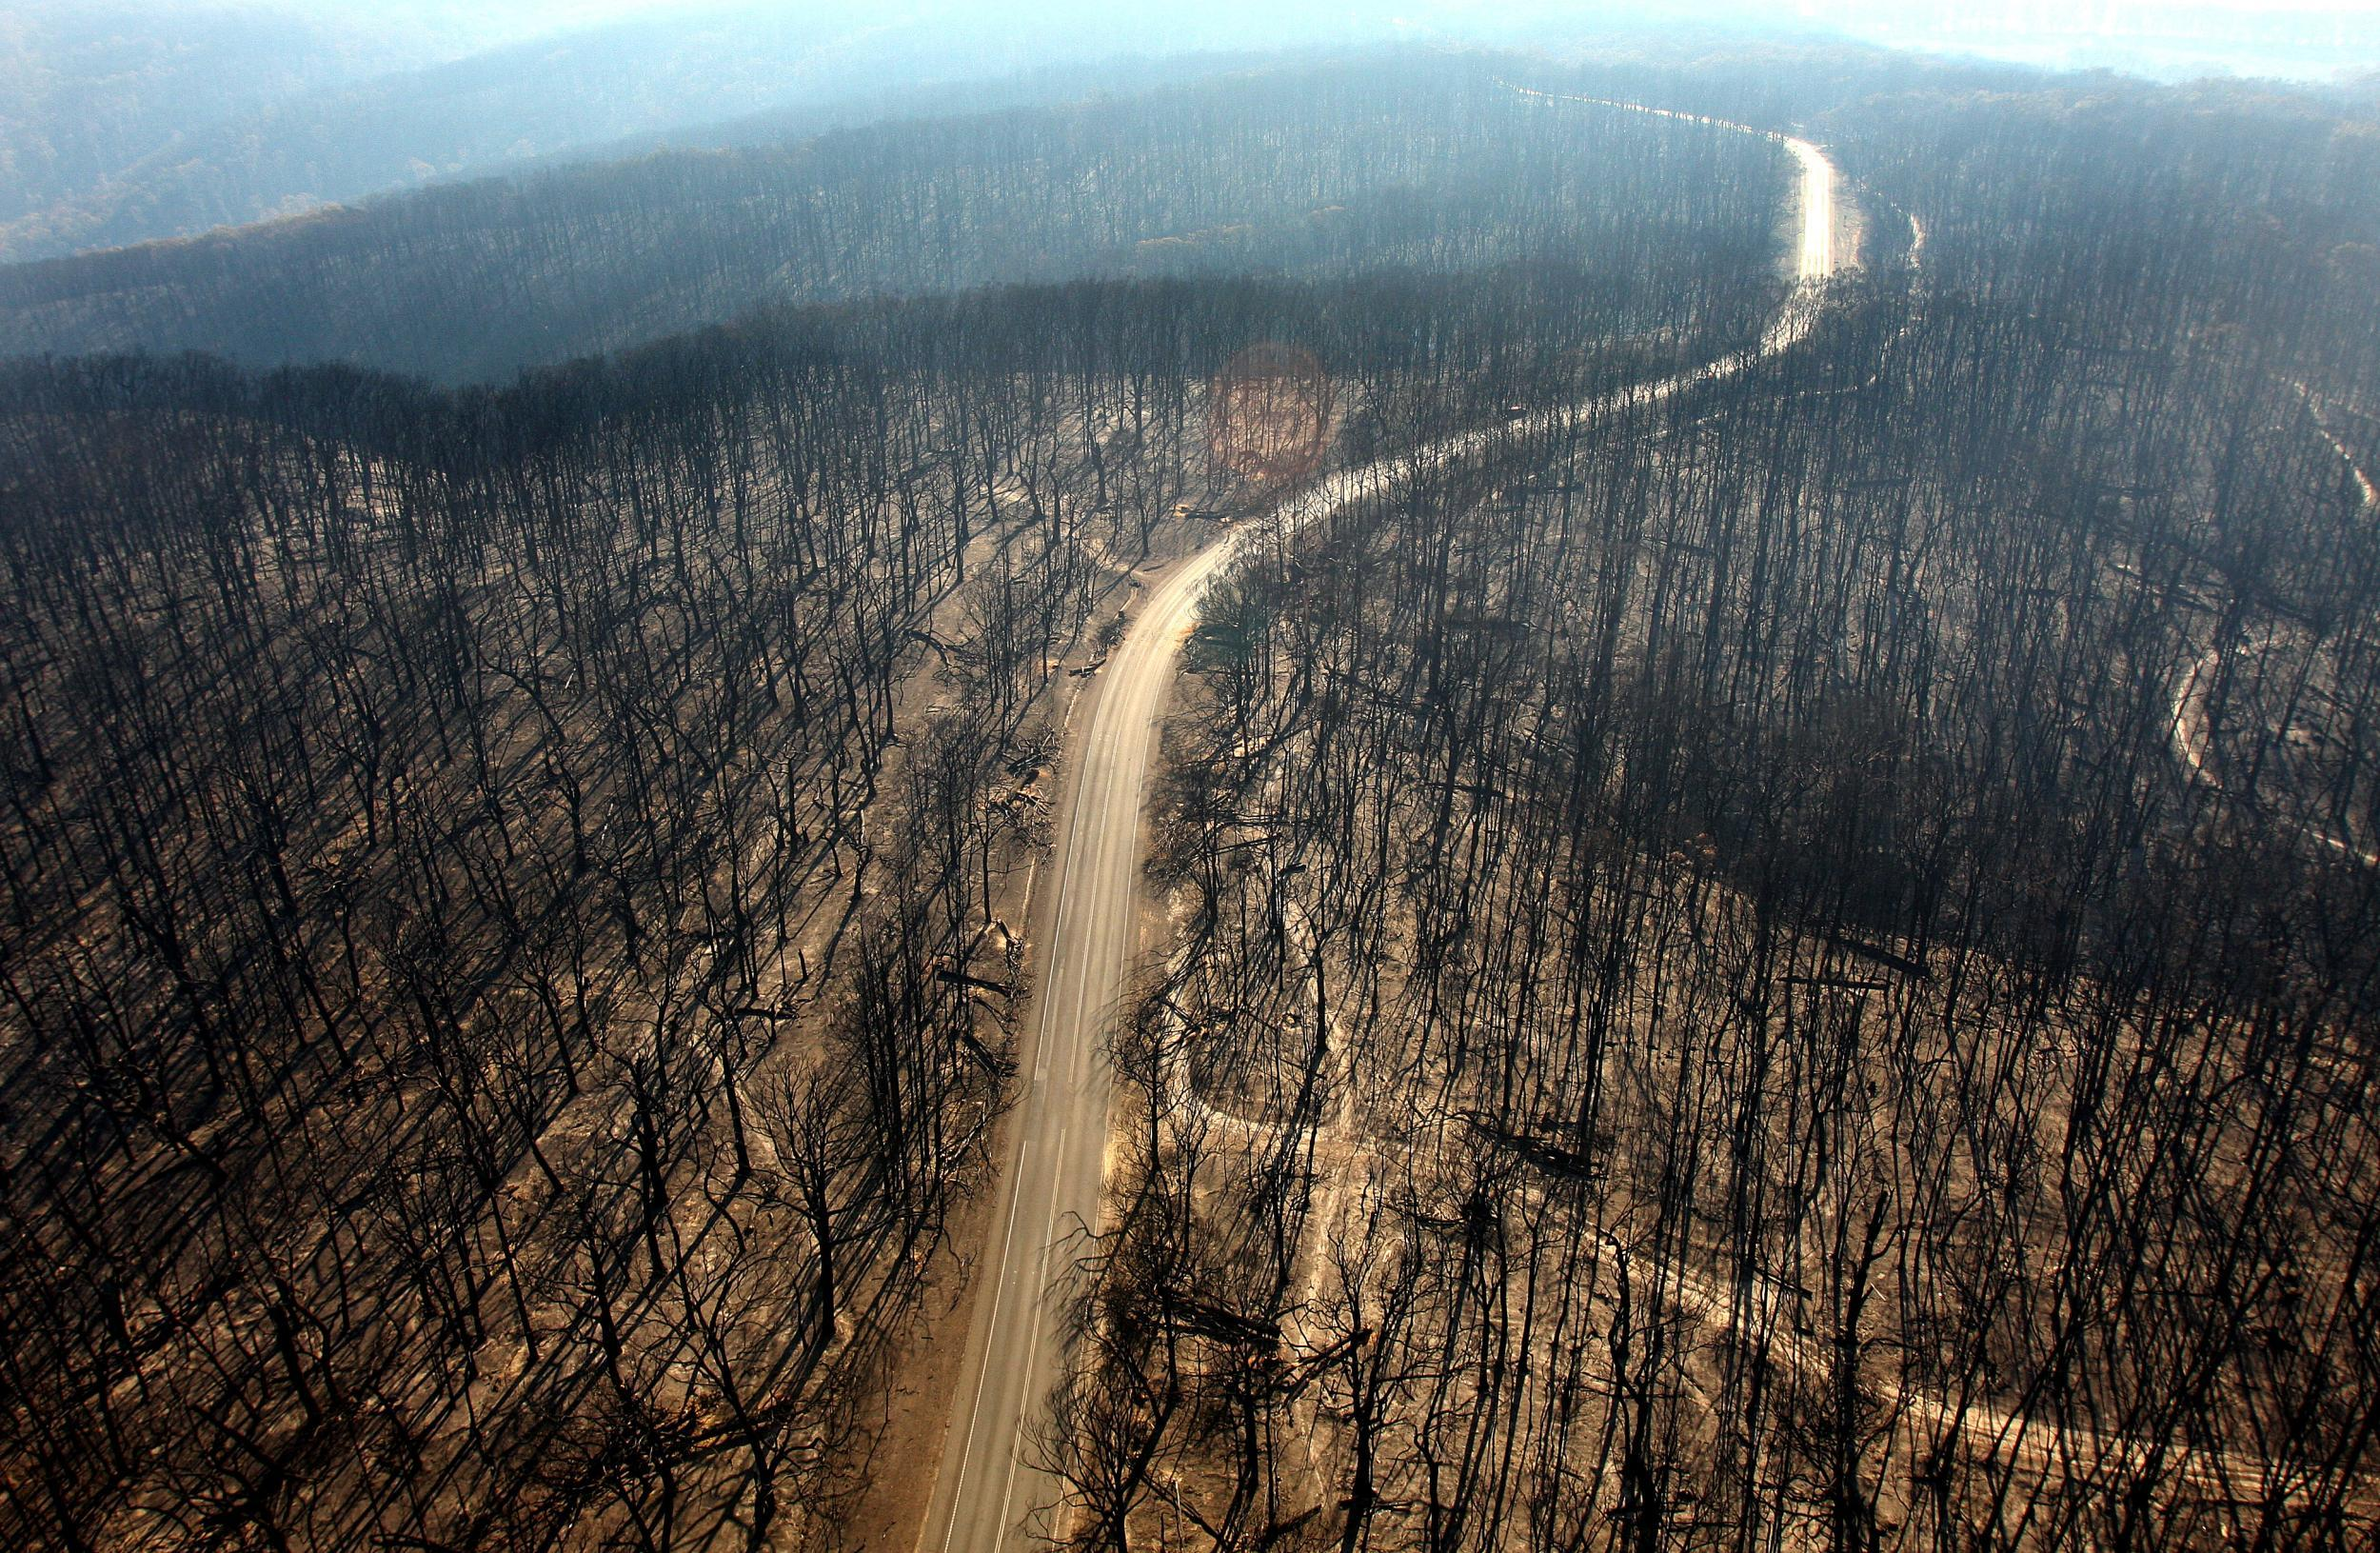 Australia wildfires: Mining firm BHP complains smoke is slowing down coal production